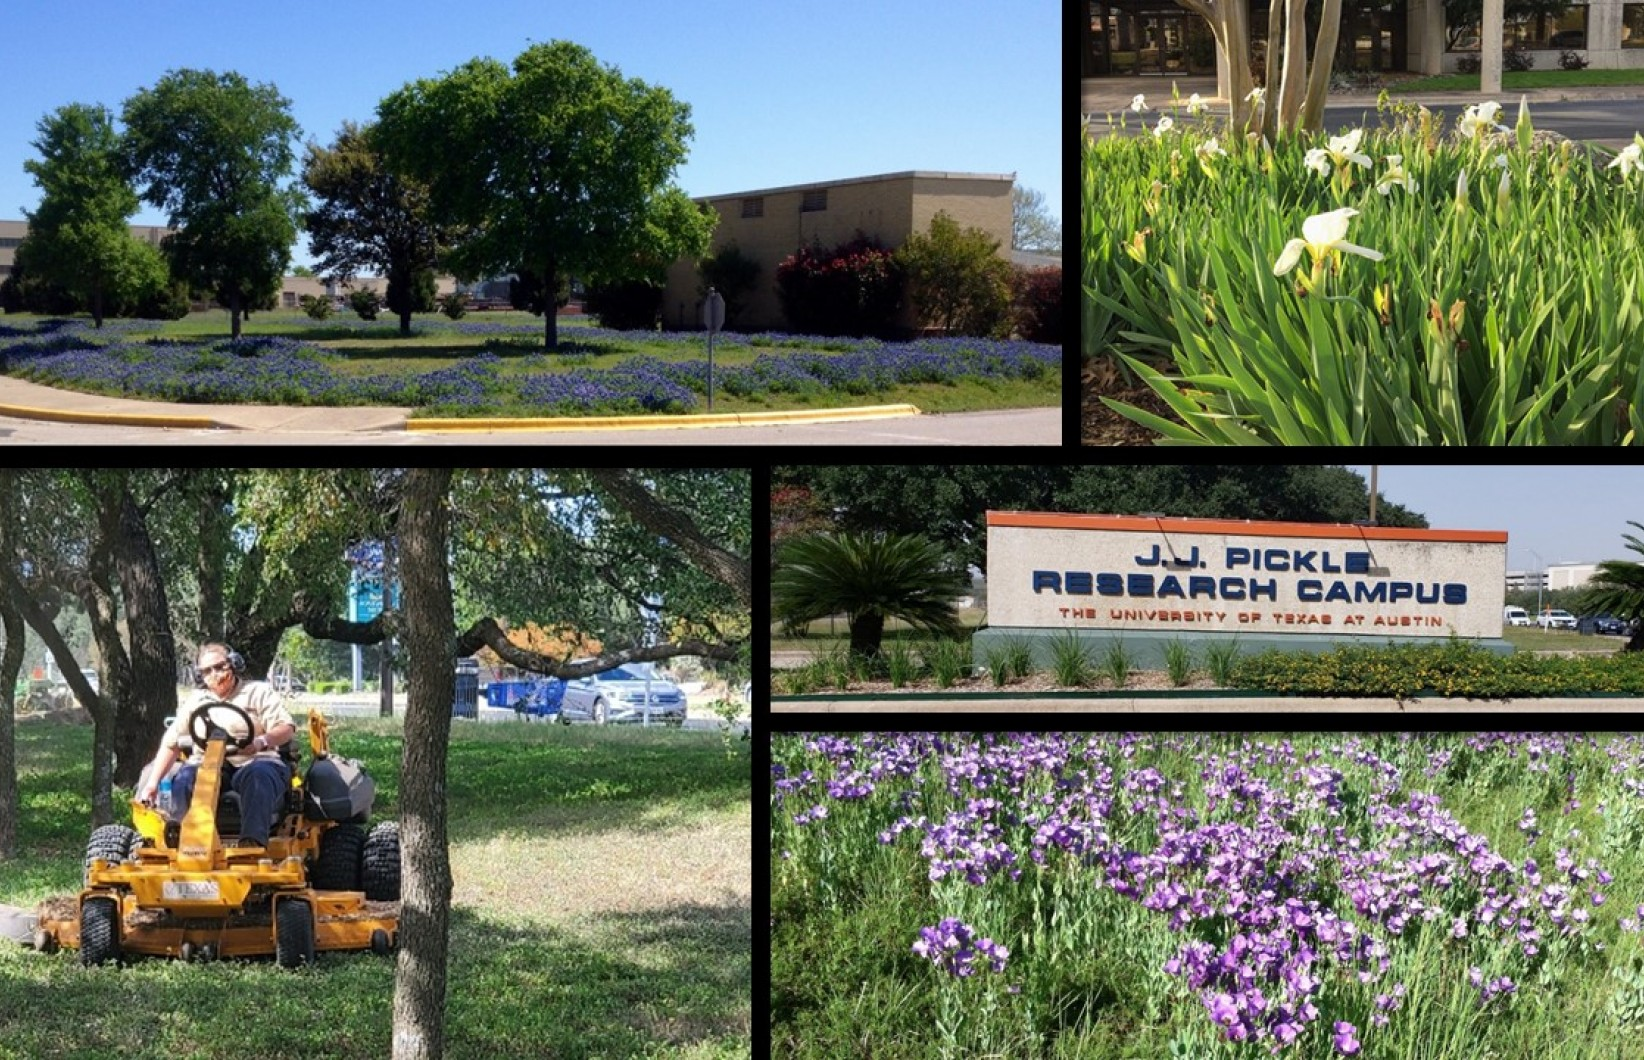 Image collage of the landscape at JJ Pickle Research Campus